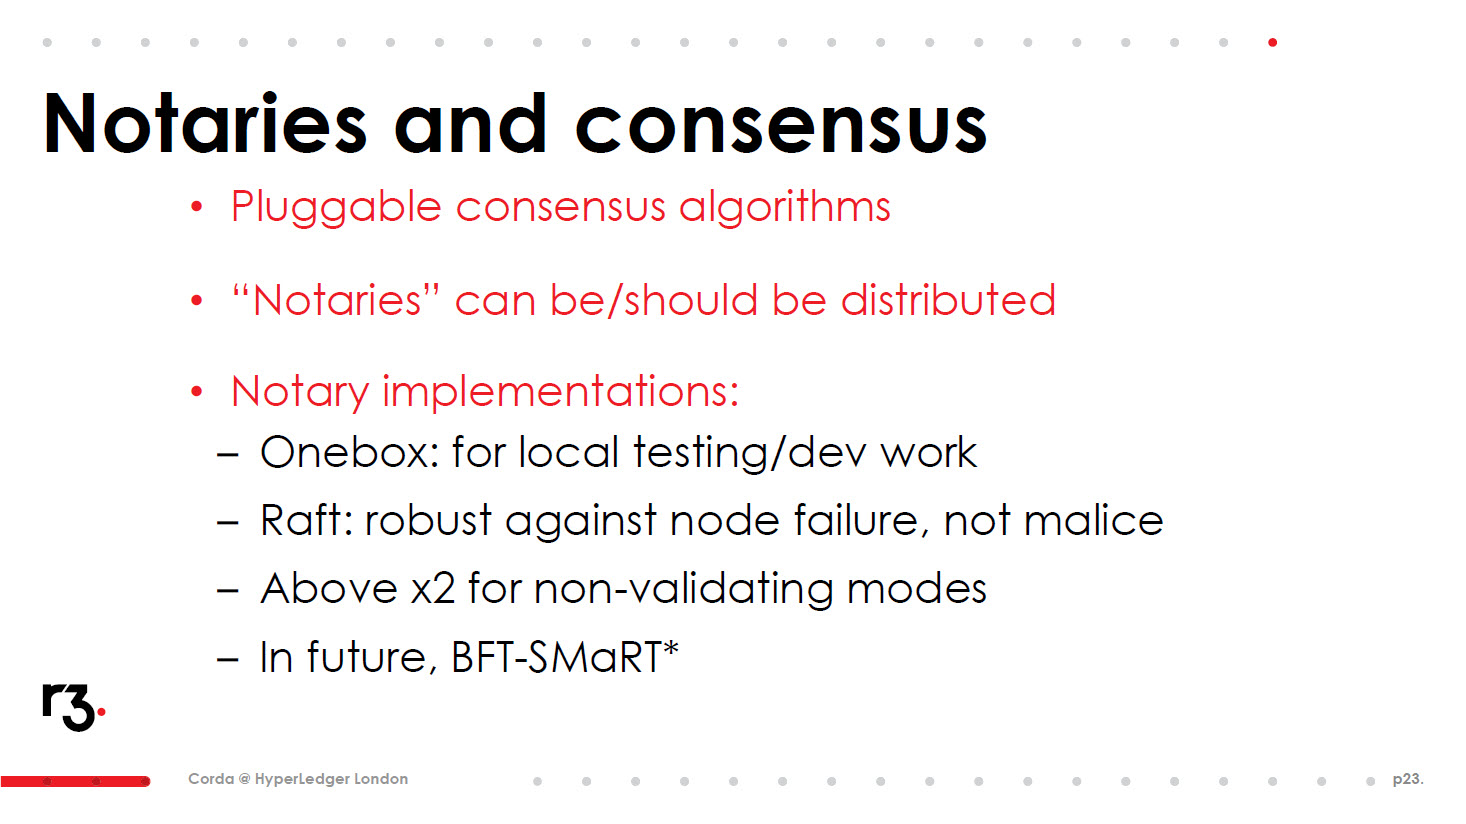 Hyperledger R3 CEV Corda notaries and consensus